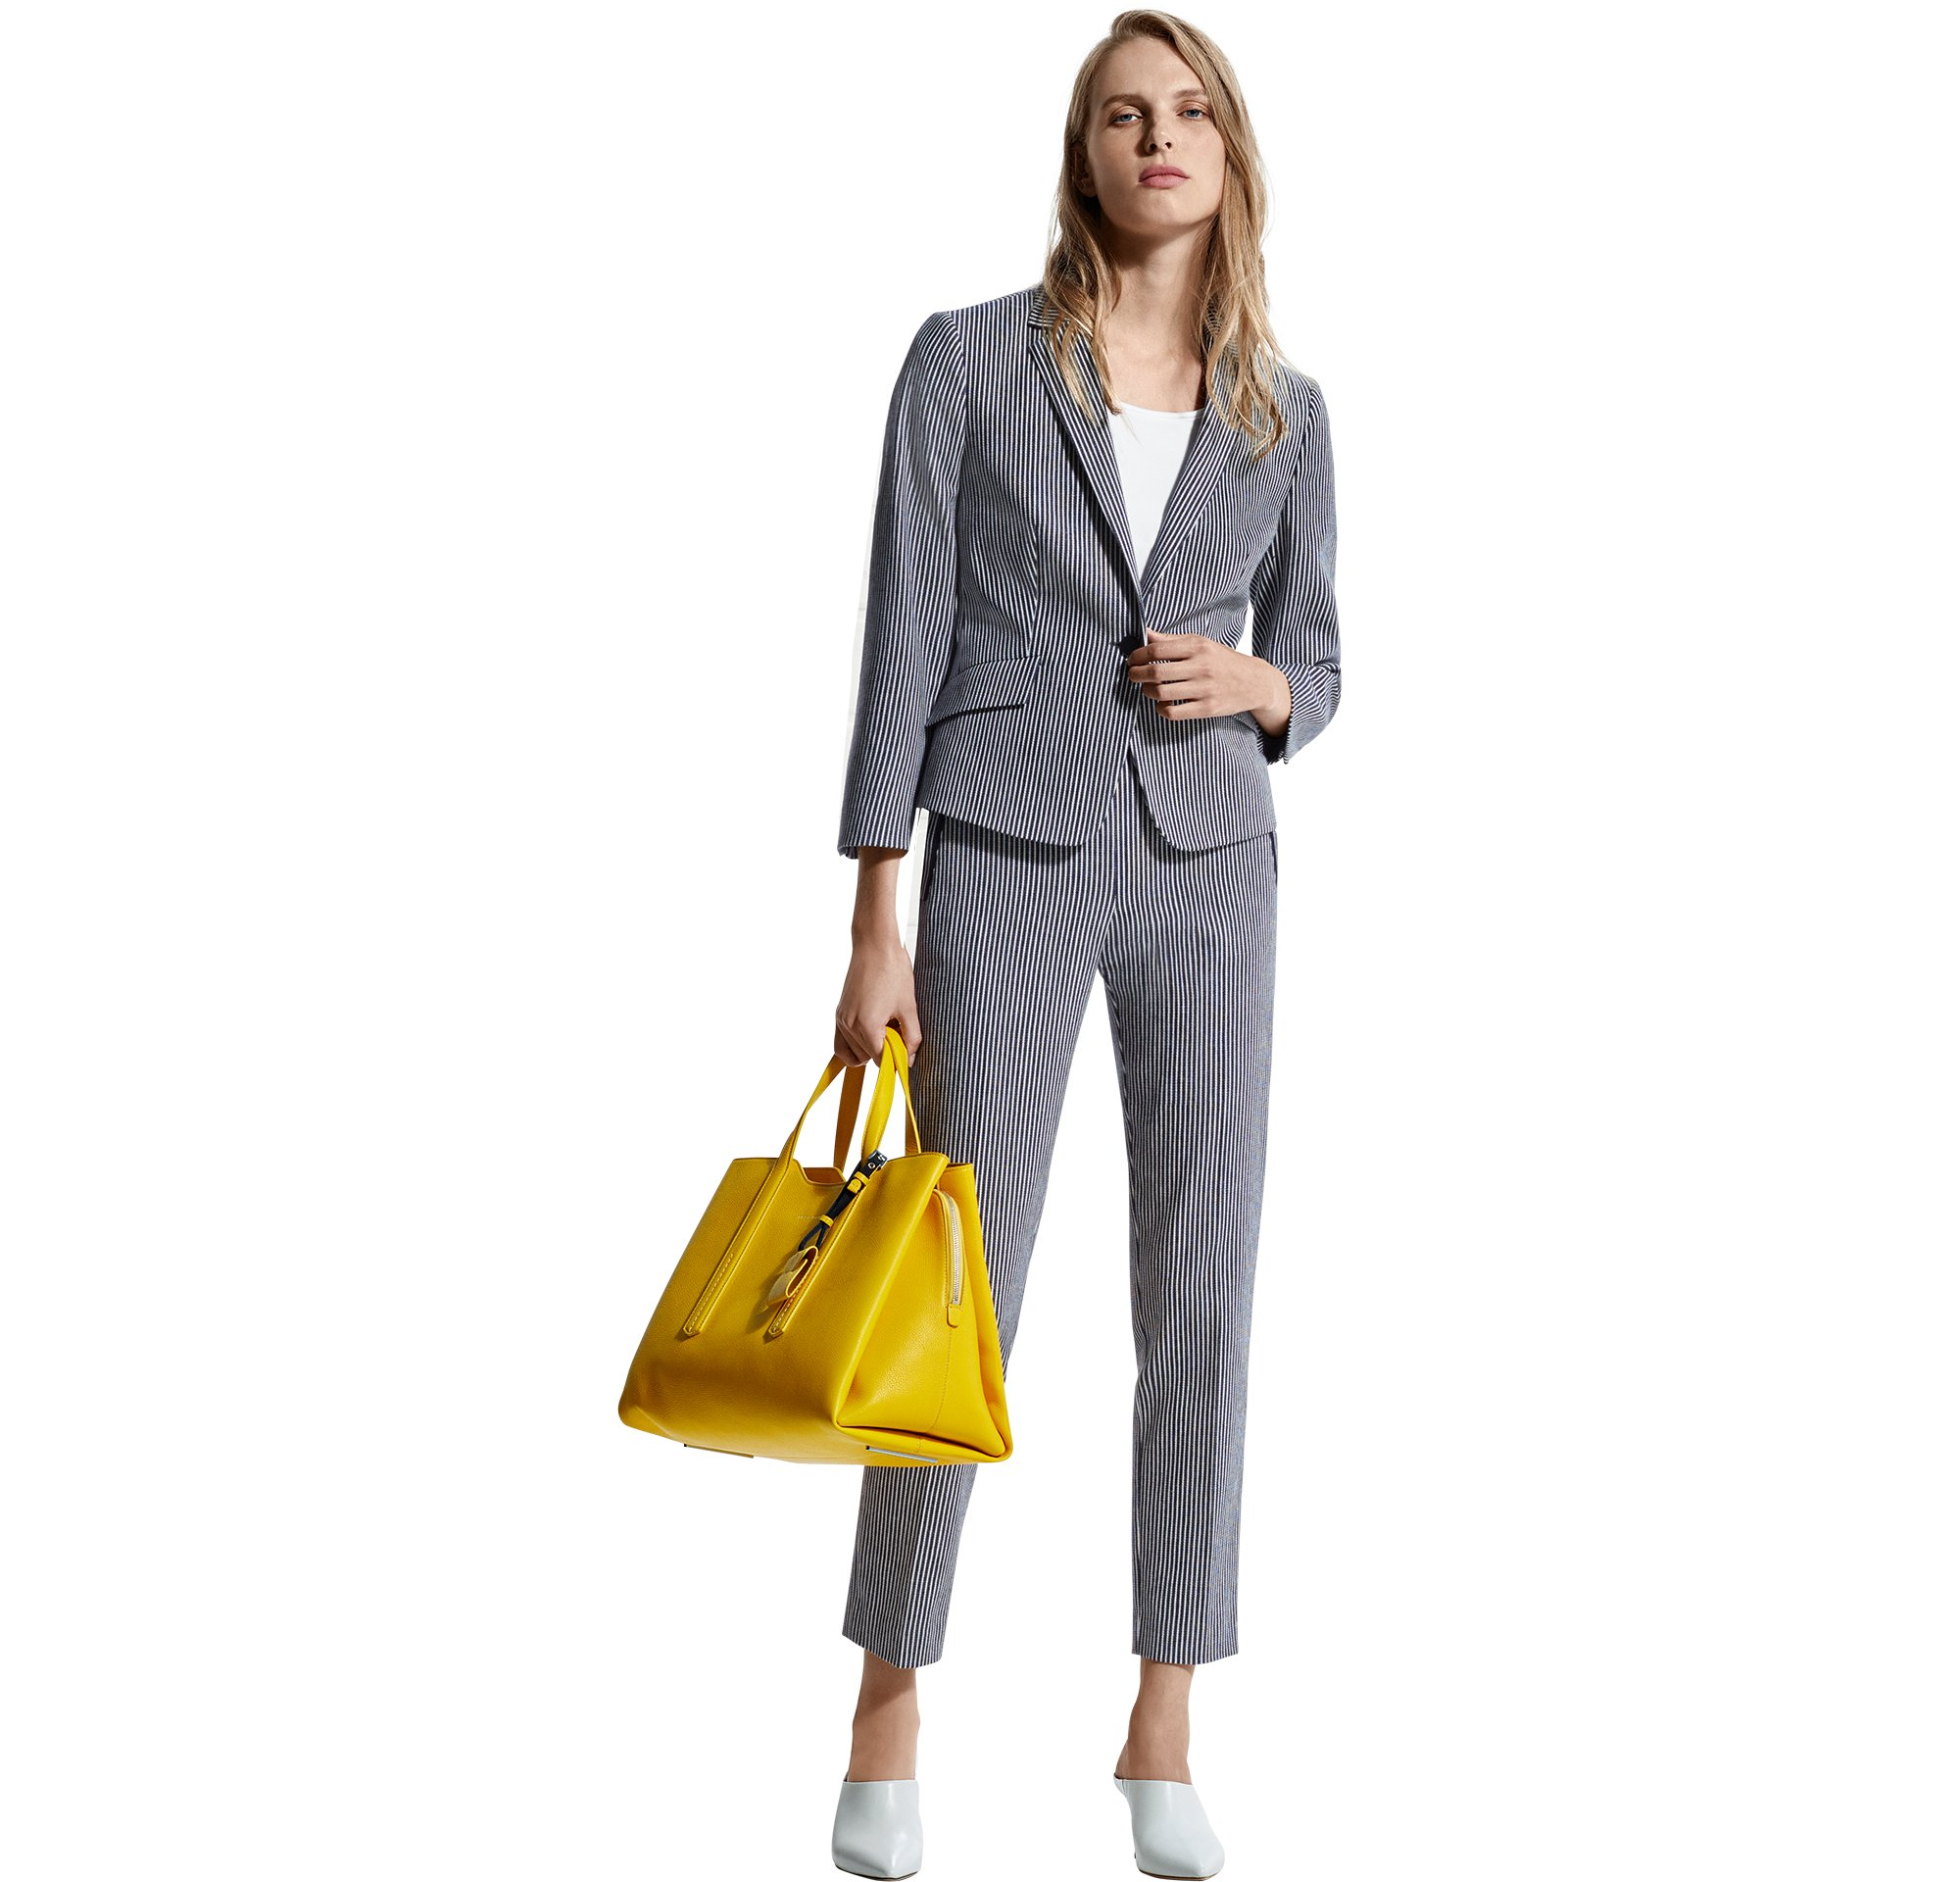 CTG_BOSS_Women_SR18_Look_14,